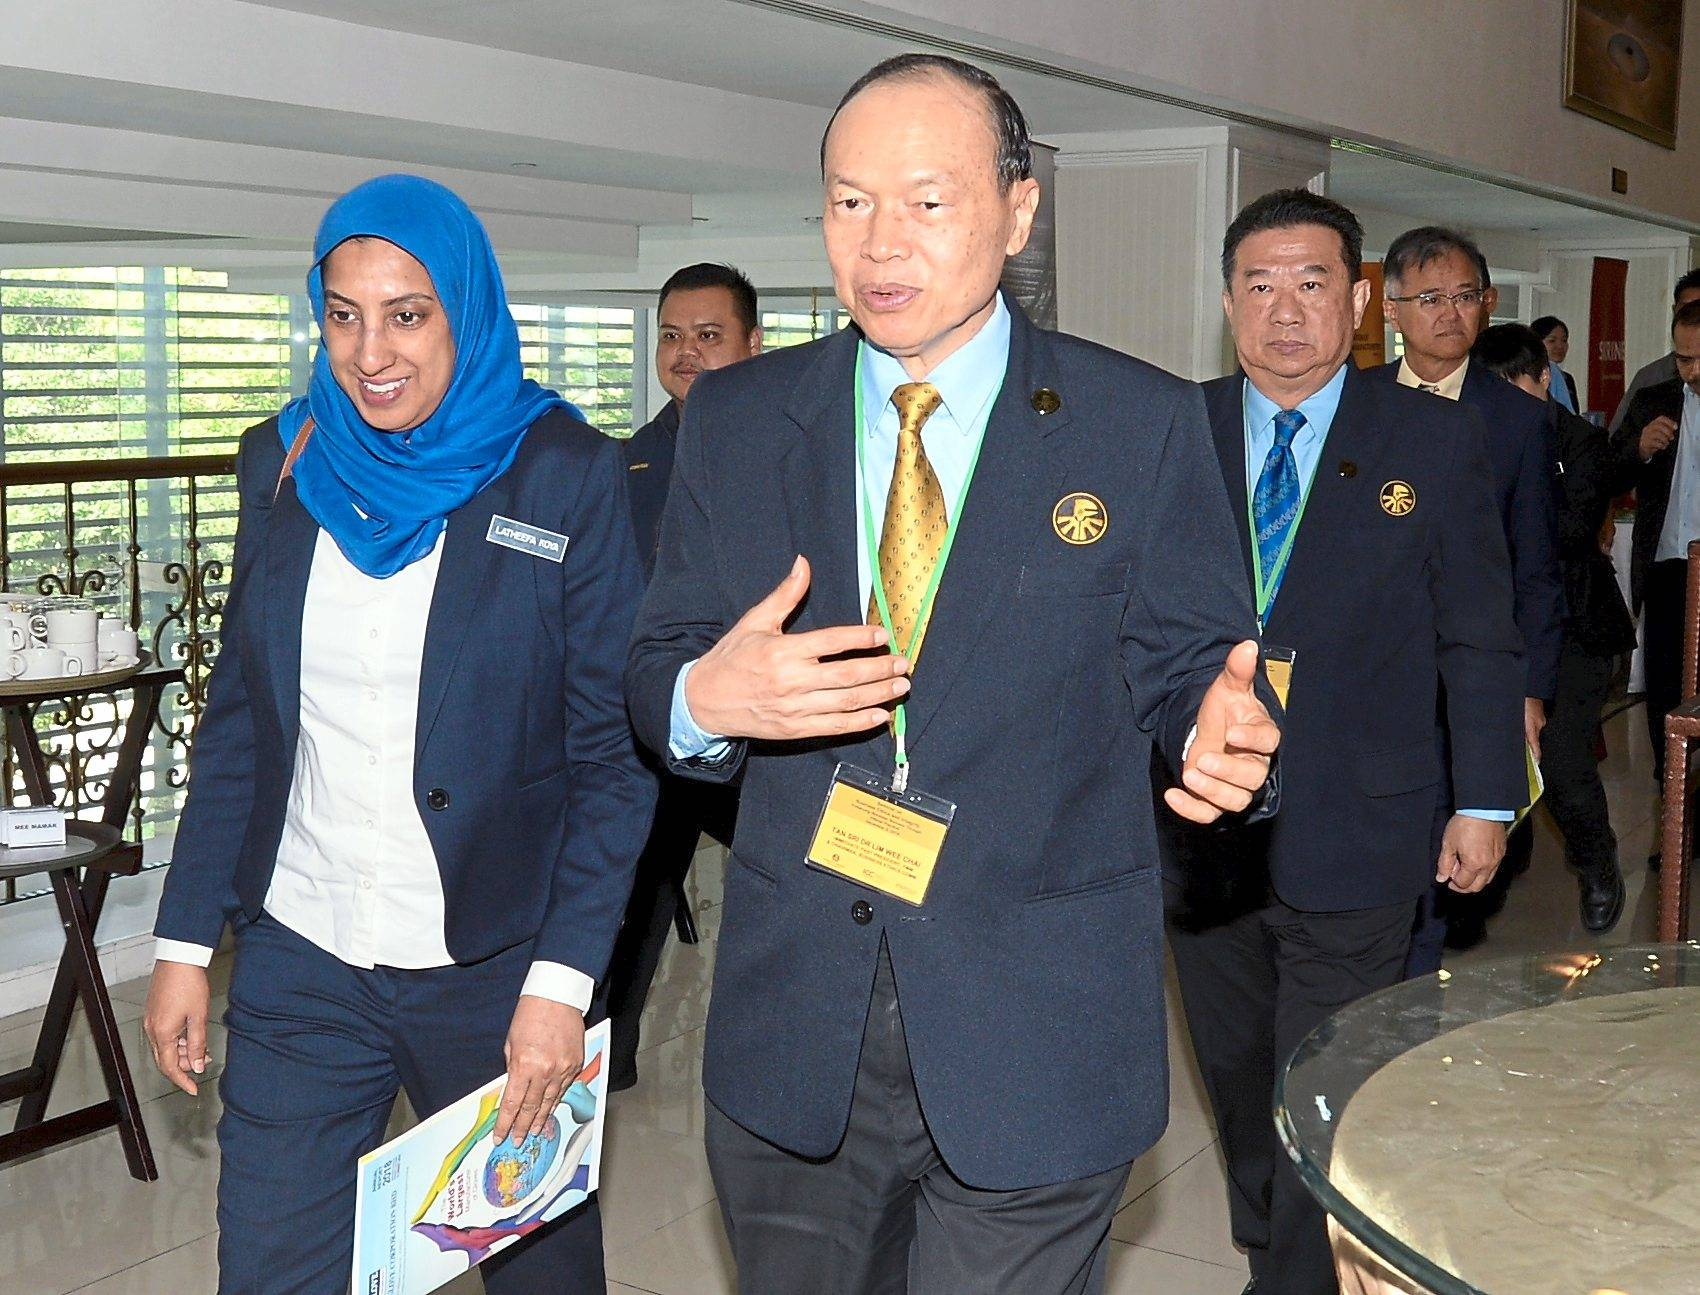 Top Glove Corporation Bhd executive chairman Tan Sri Dr Lim Wee Chai (right), who is also the immediate past president of the Federation of Malaysian Manufacturers, sharing a light moment with the Malaysian Anti-Corruption Commission chief commissioner Latheefa Koya (left) after she officiated the Seminar on Business Ethics and Integrity.(04/12/2019/S.S.KANESAN/The Star)